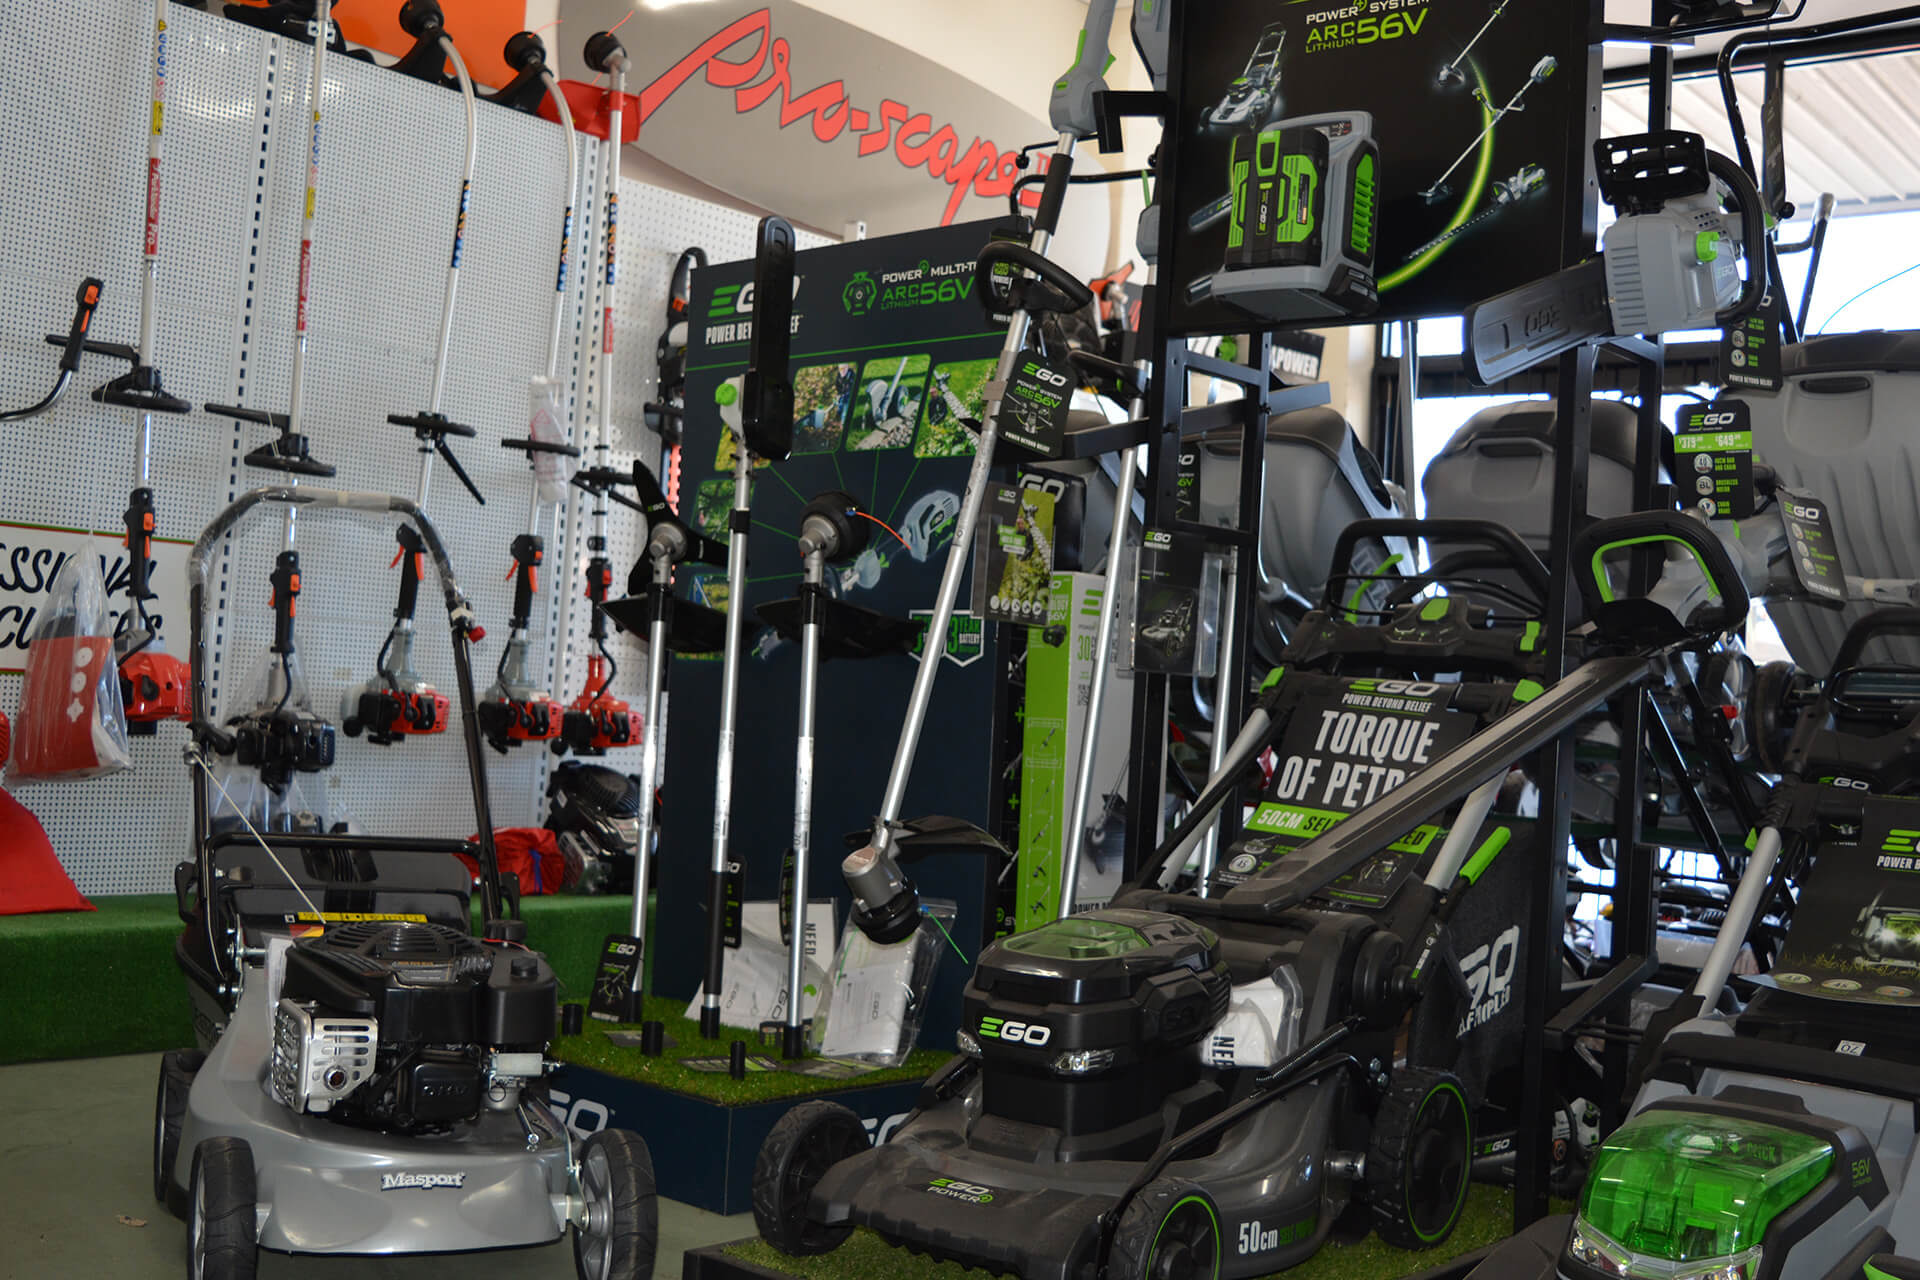 Mowers on display